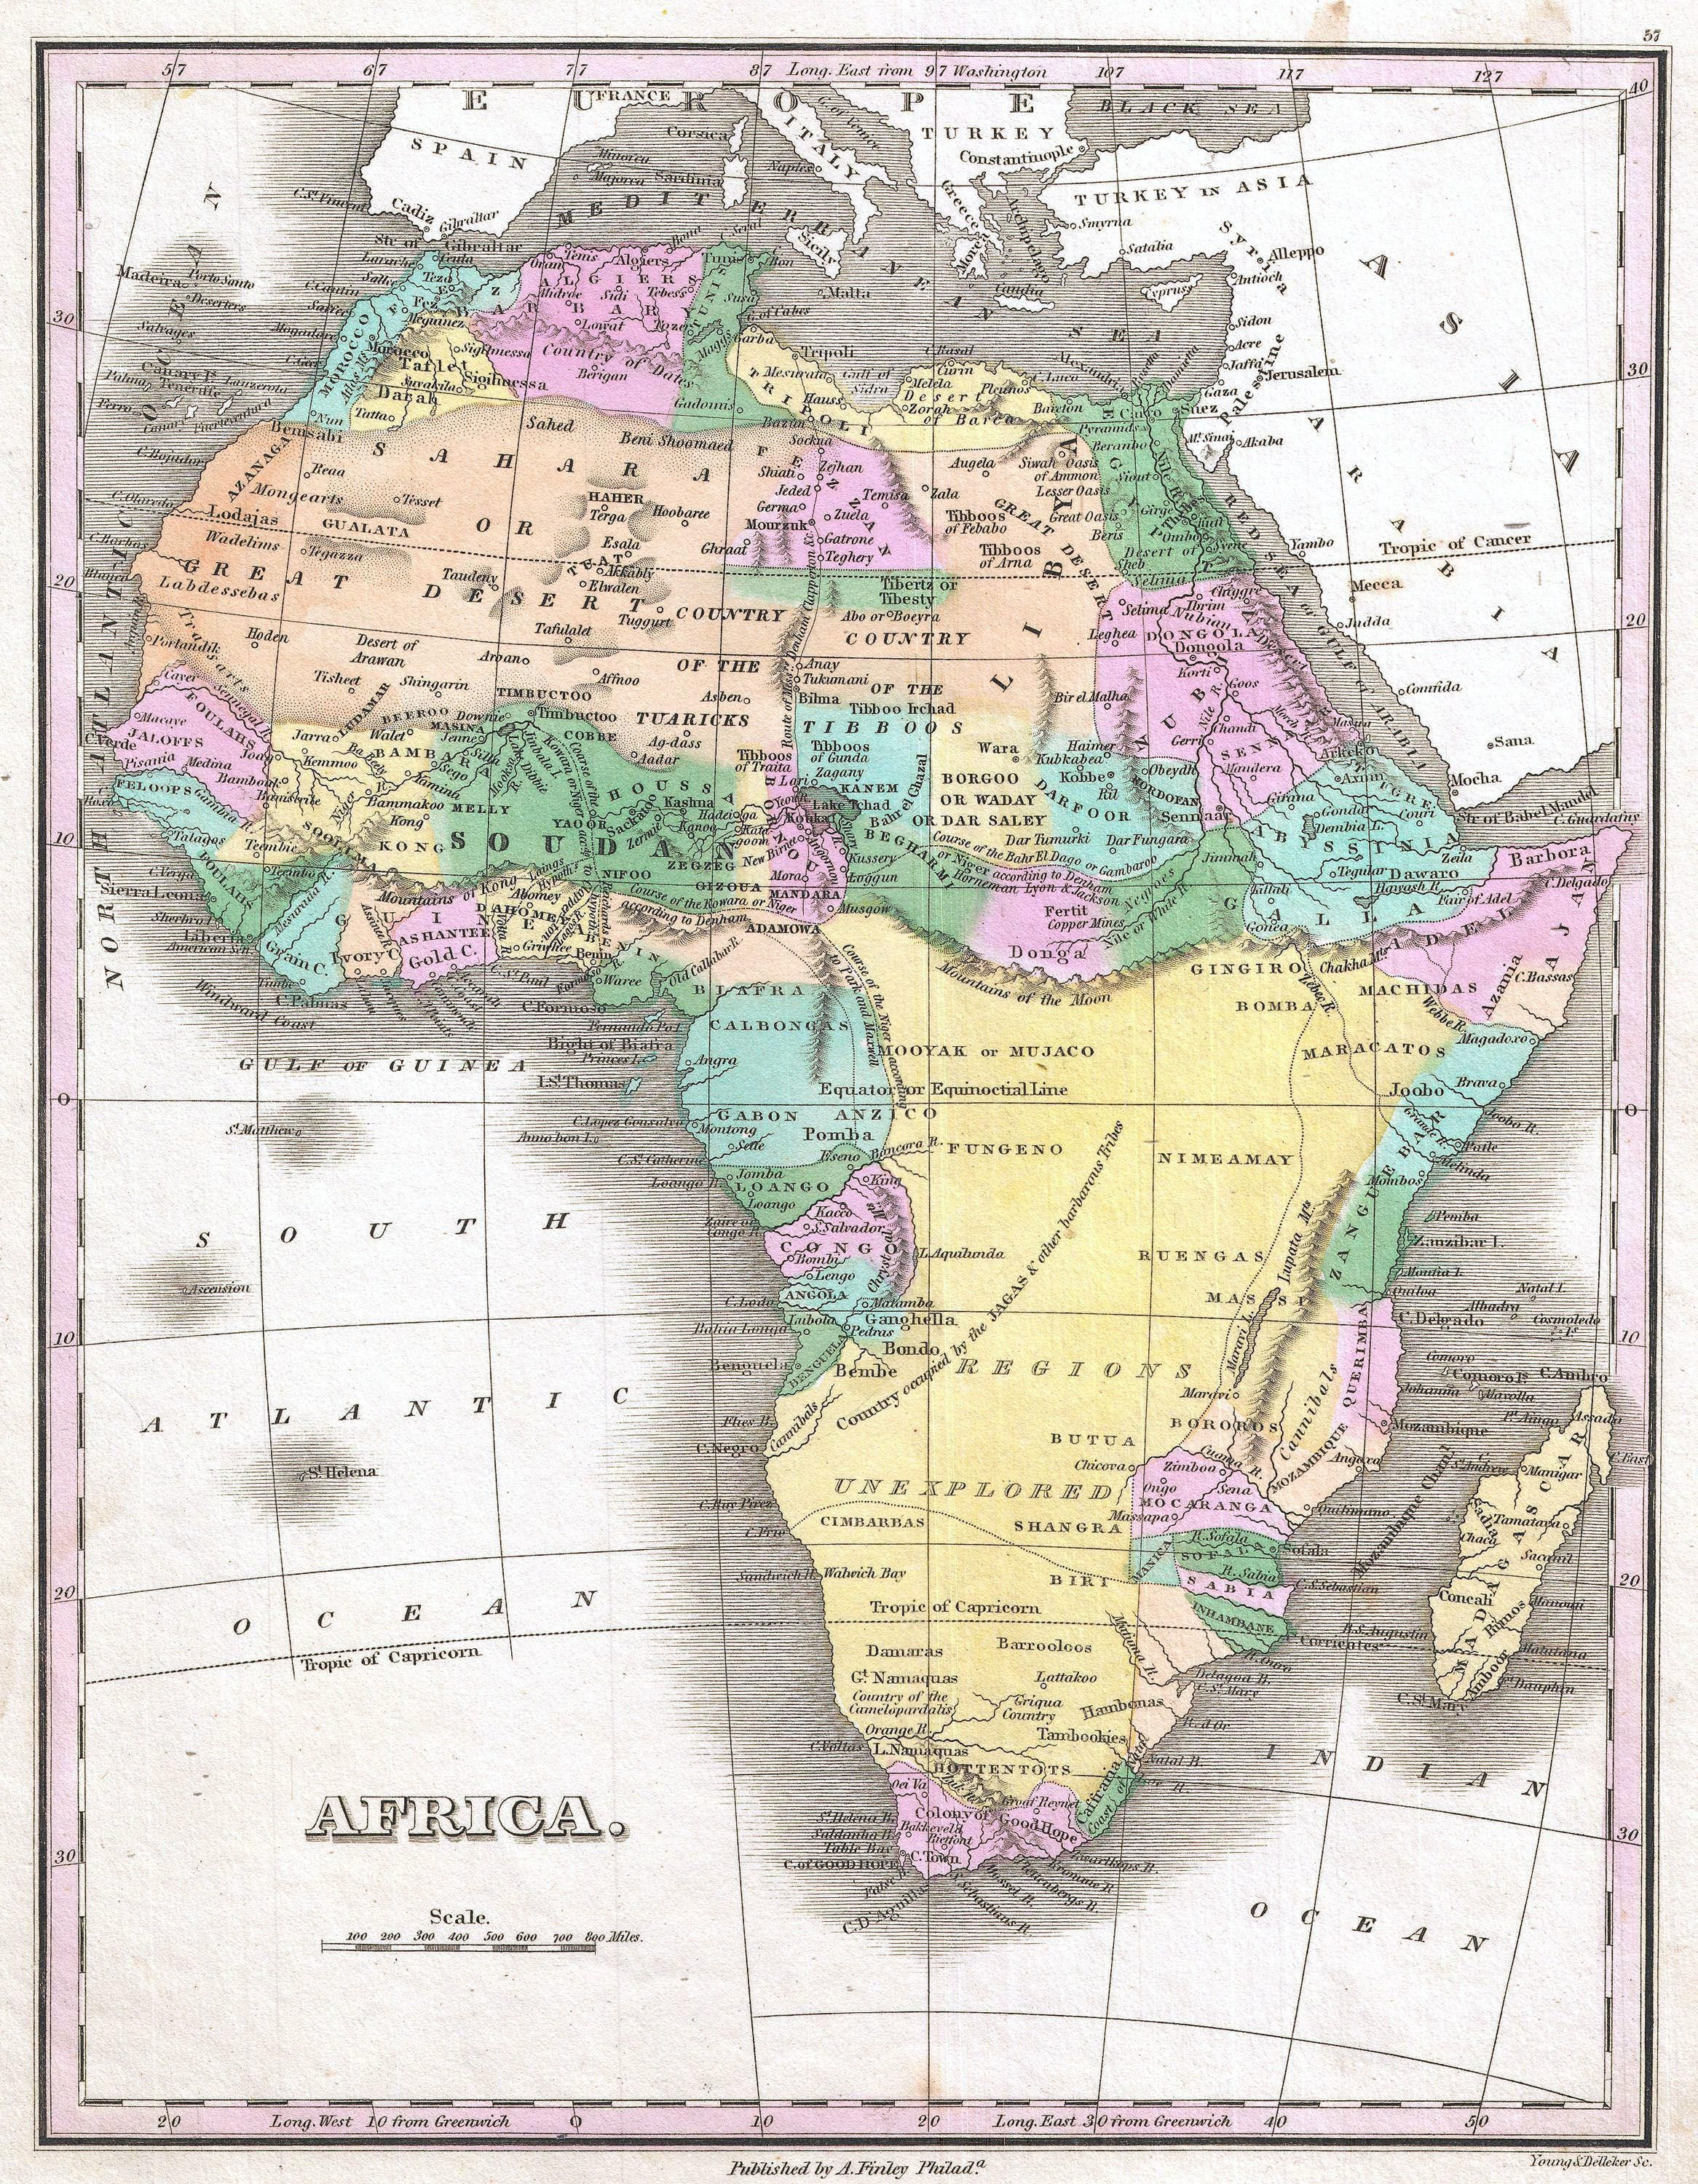 1827 Finley Map Of Africa Showing The Mountains Of Kong And The Mountains Of The Moon Africa Map Old Maps Old Map